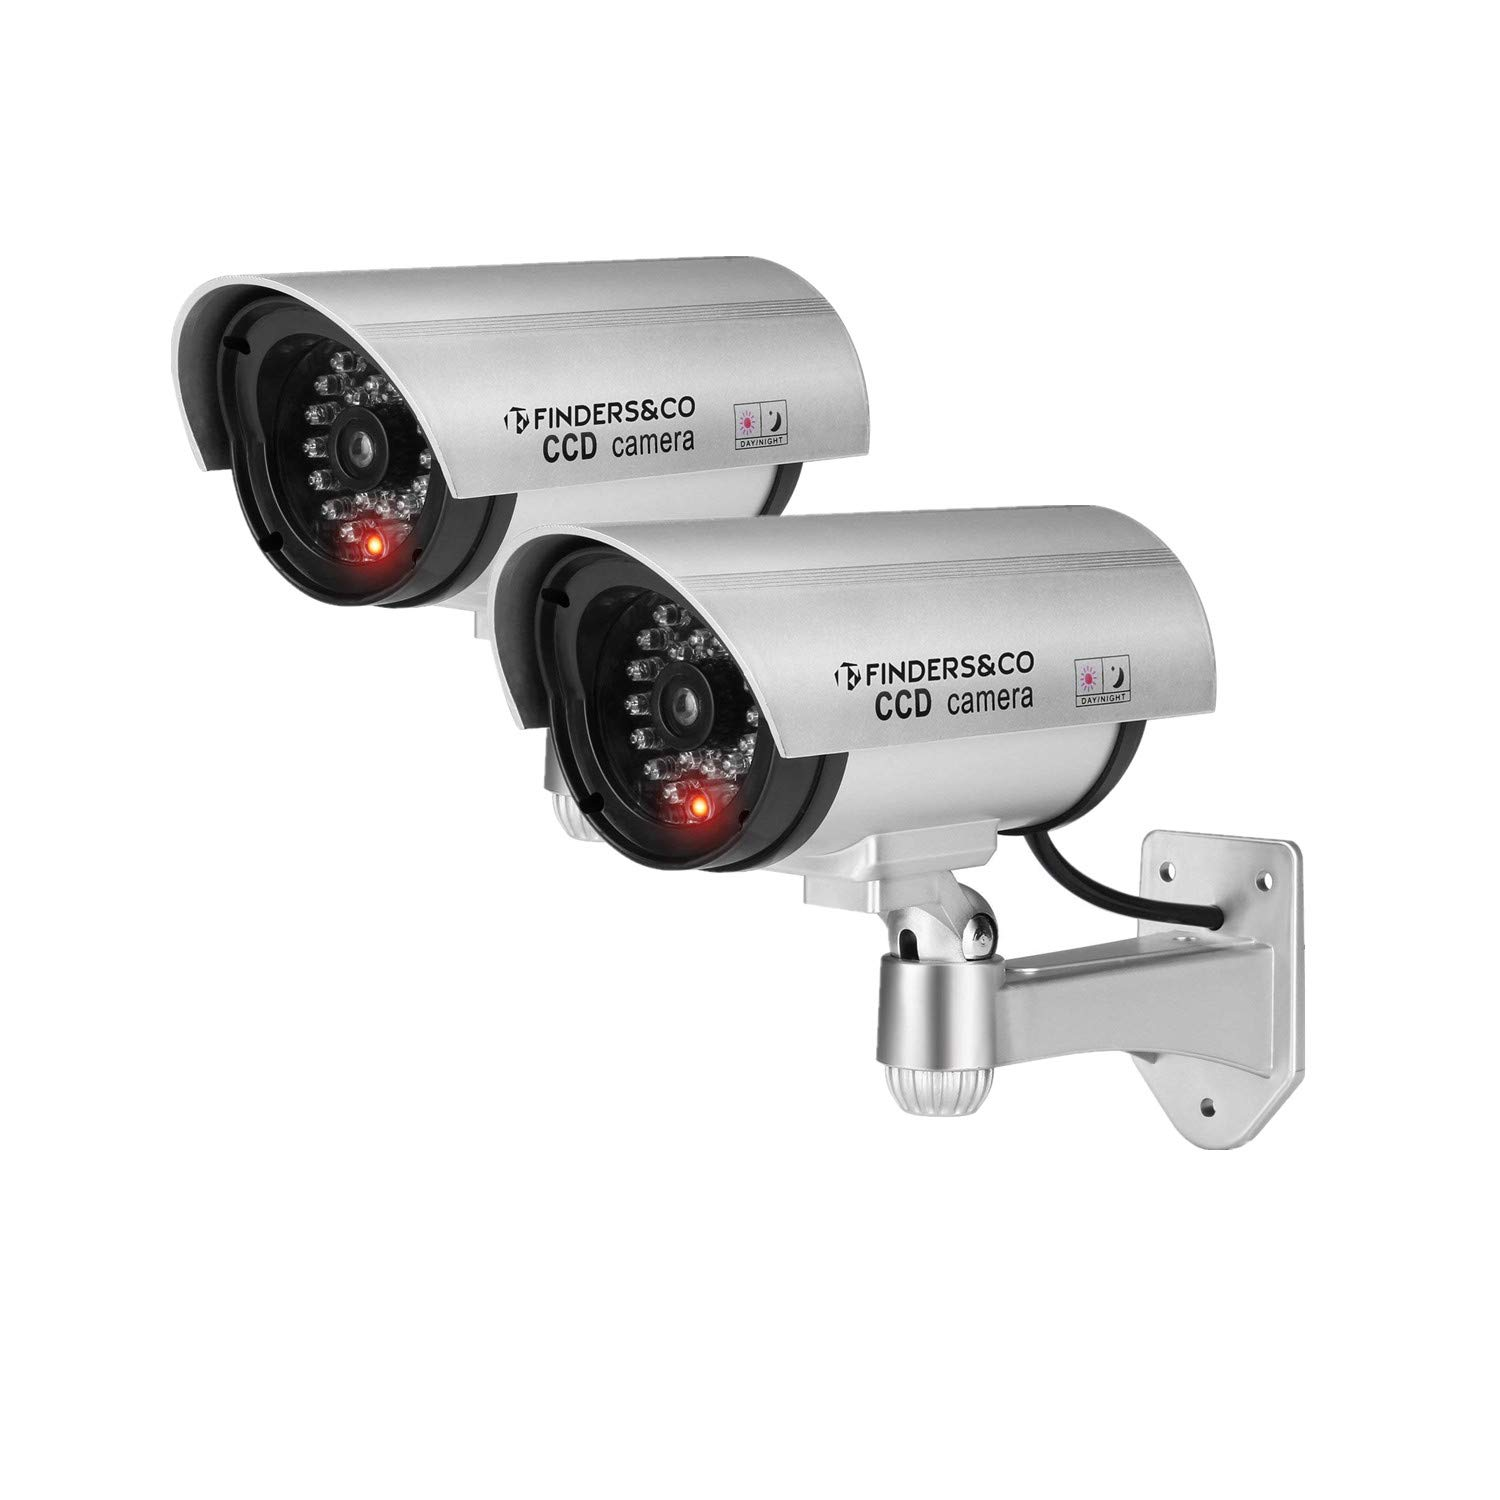 Fake Security Camera, Dummy CCTV Surveillance System with Realistic Red Flashing Lights and Warning Sticker (2, Silver) by F FINDERS&CO